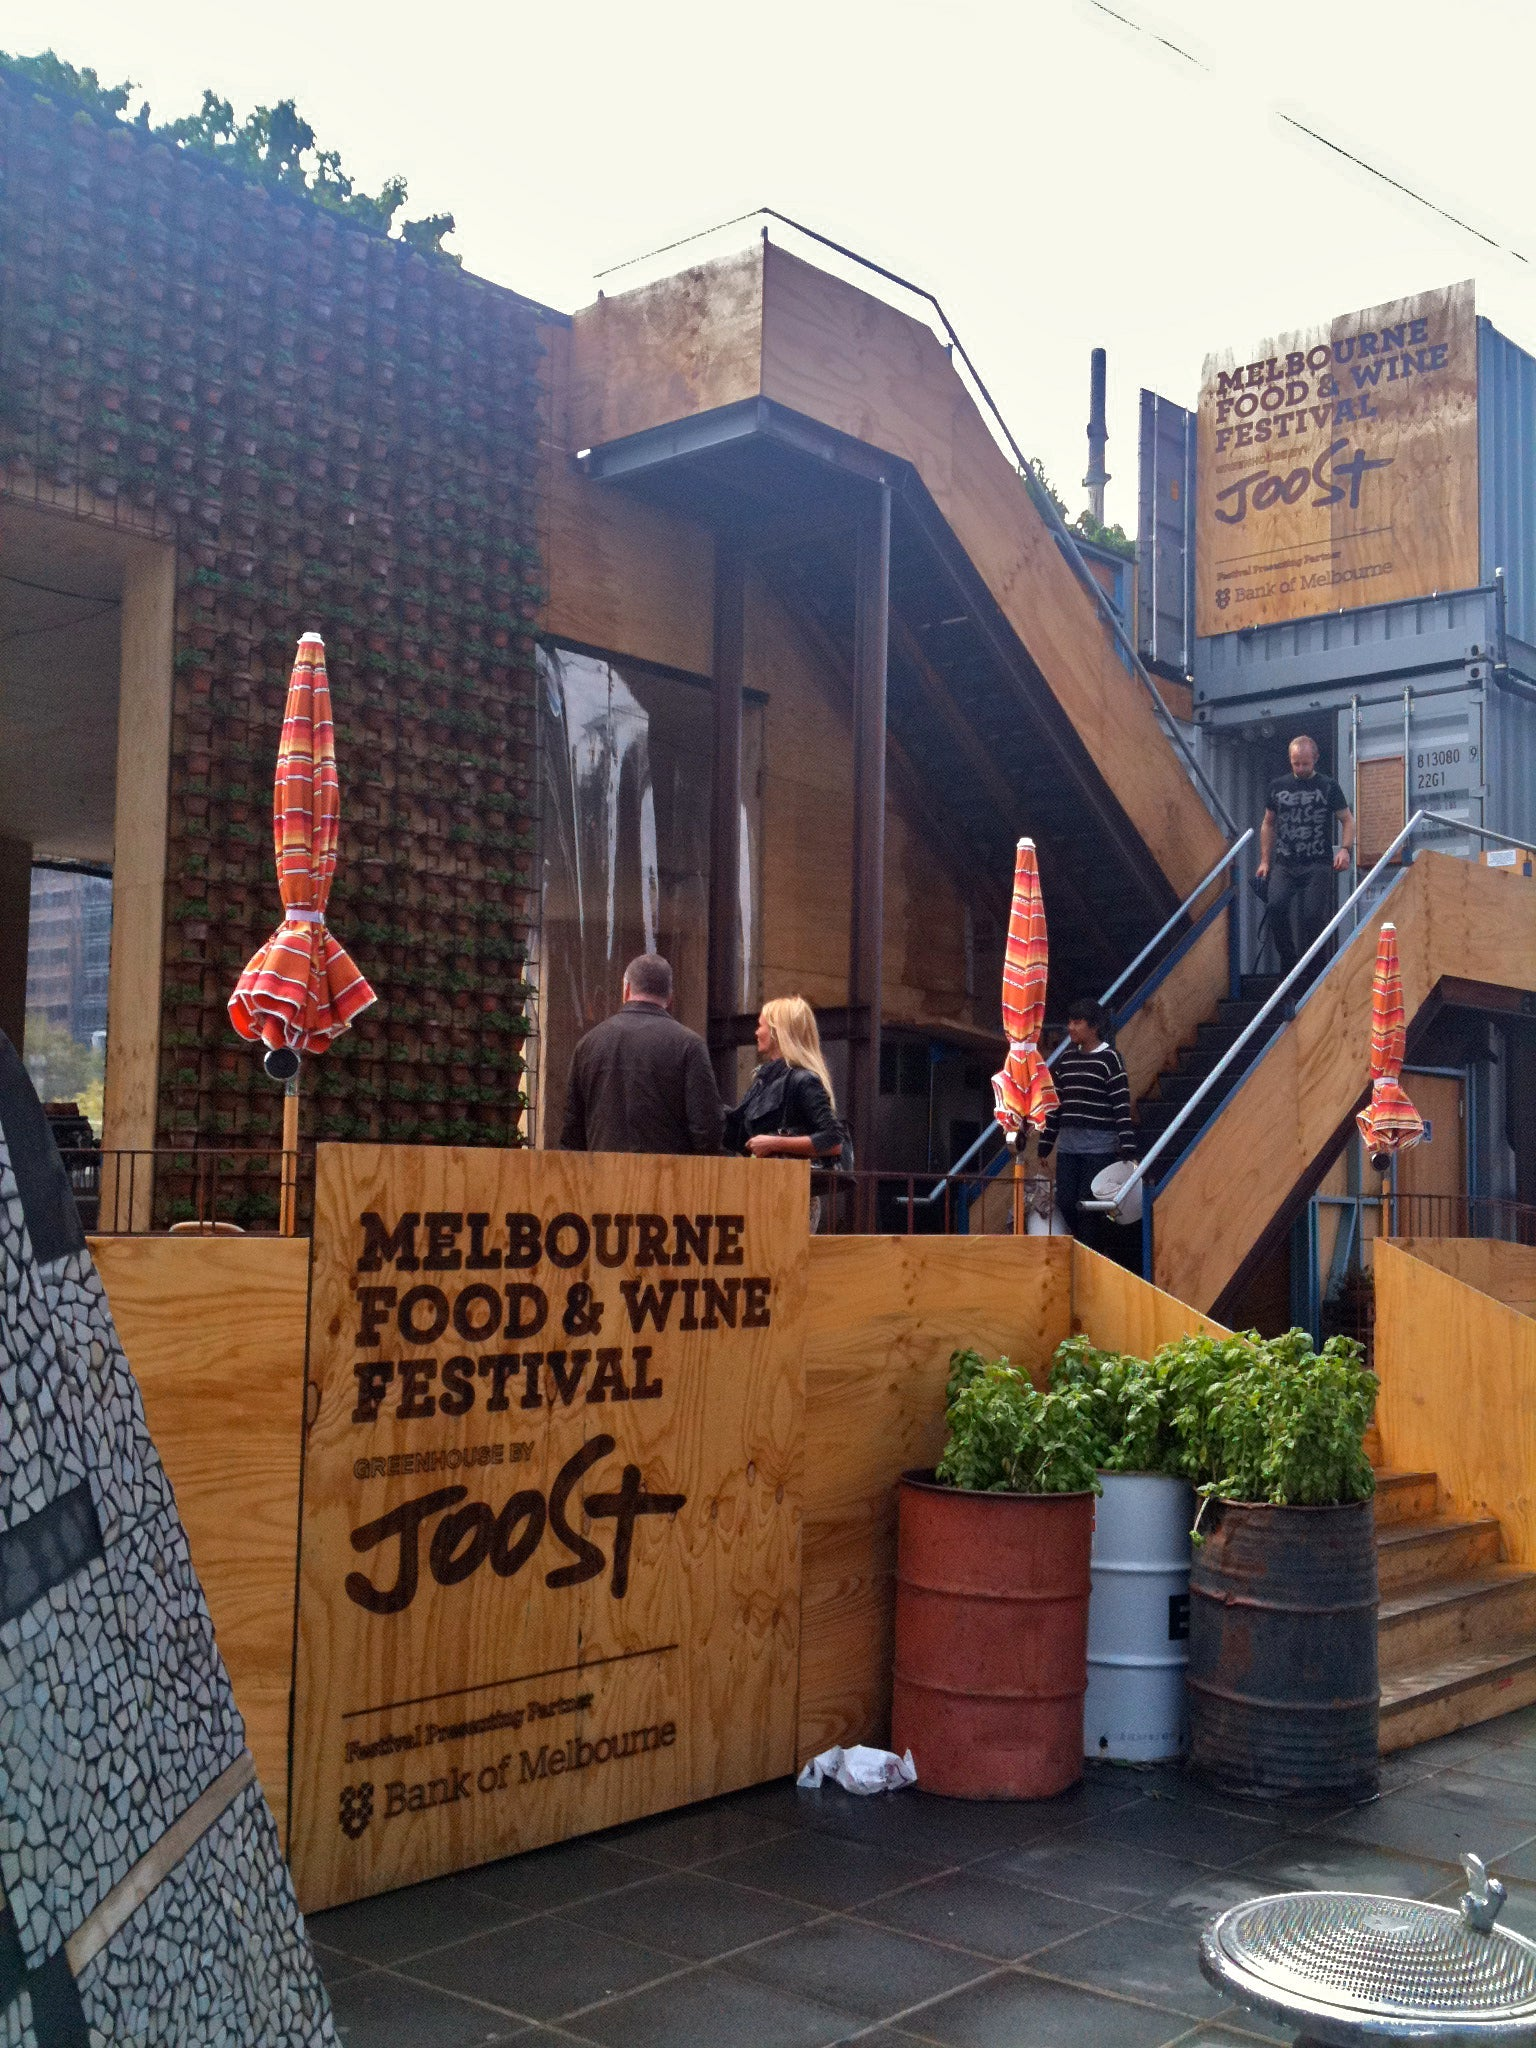 Melbourne Food and Wine Festival Greenhouse by Joost